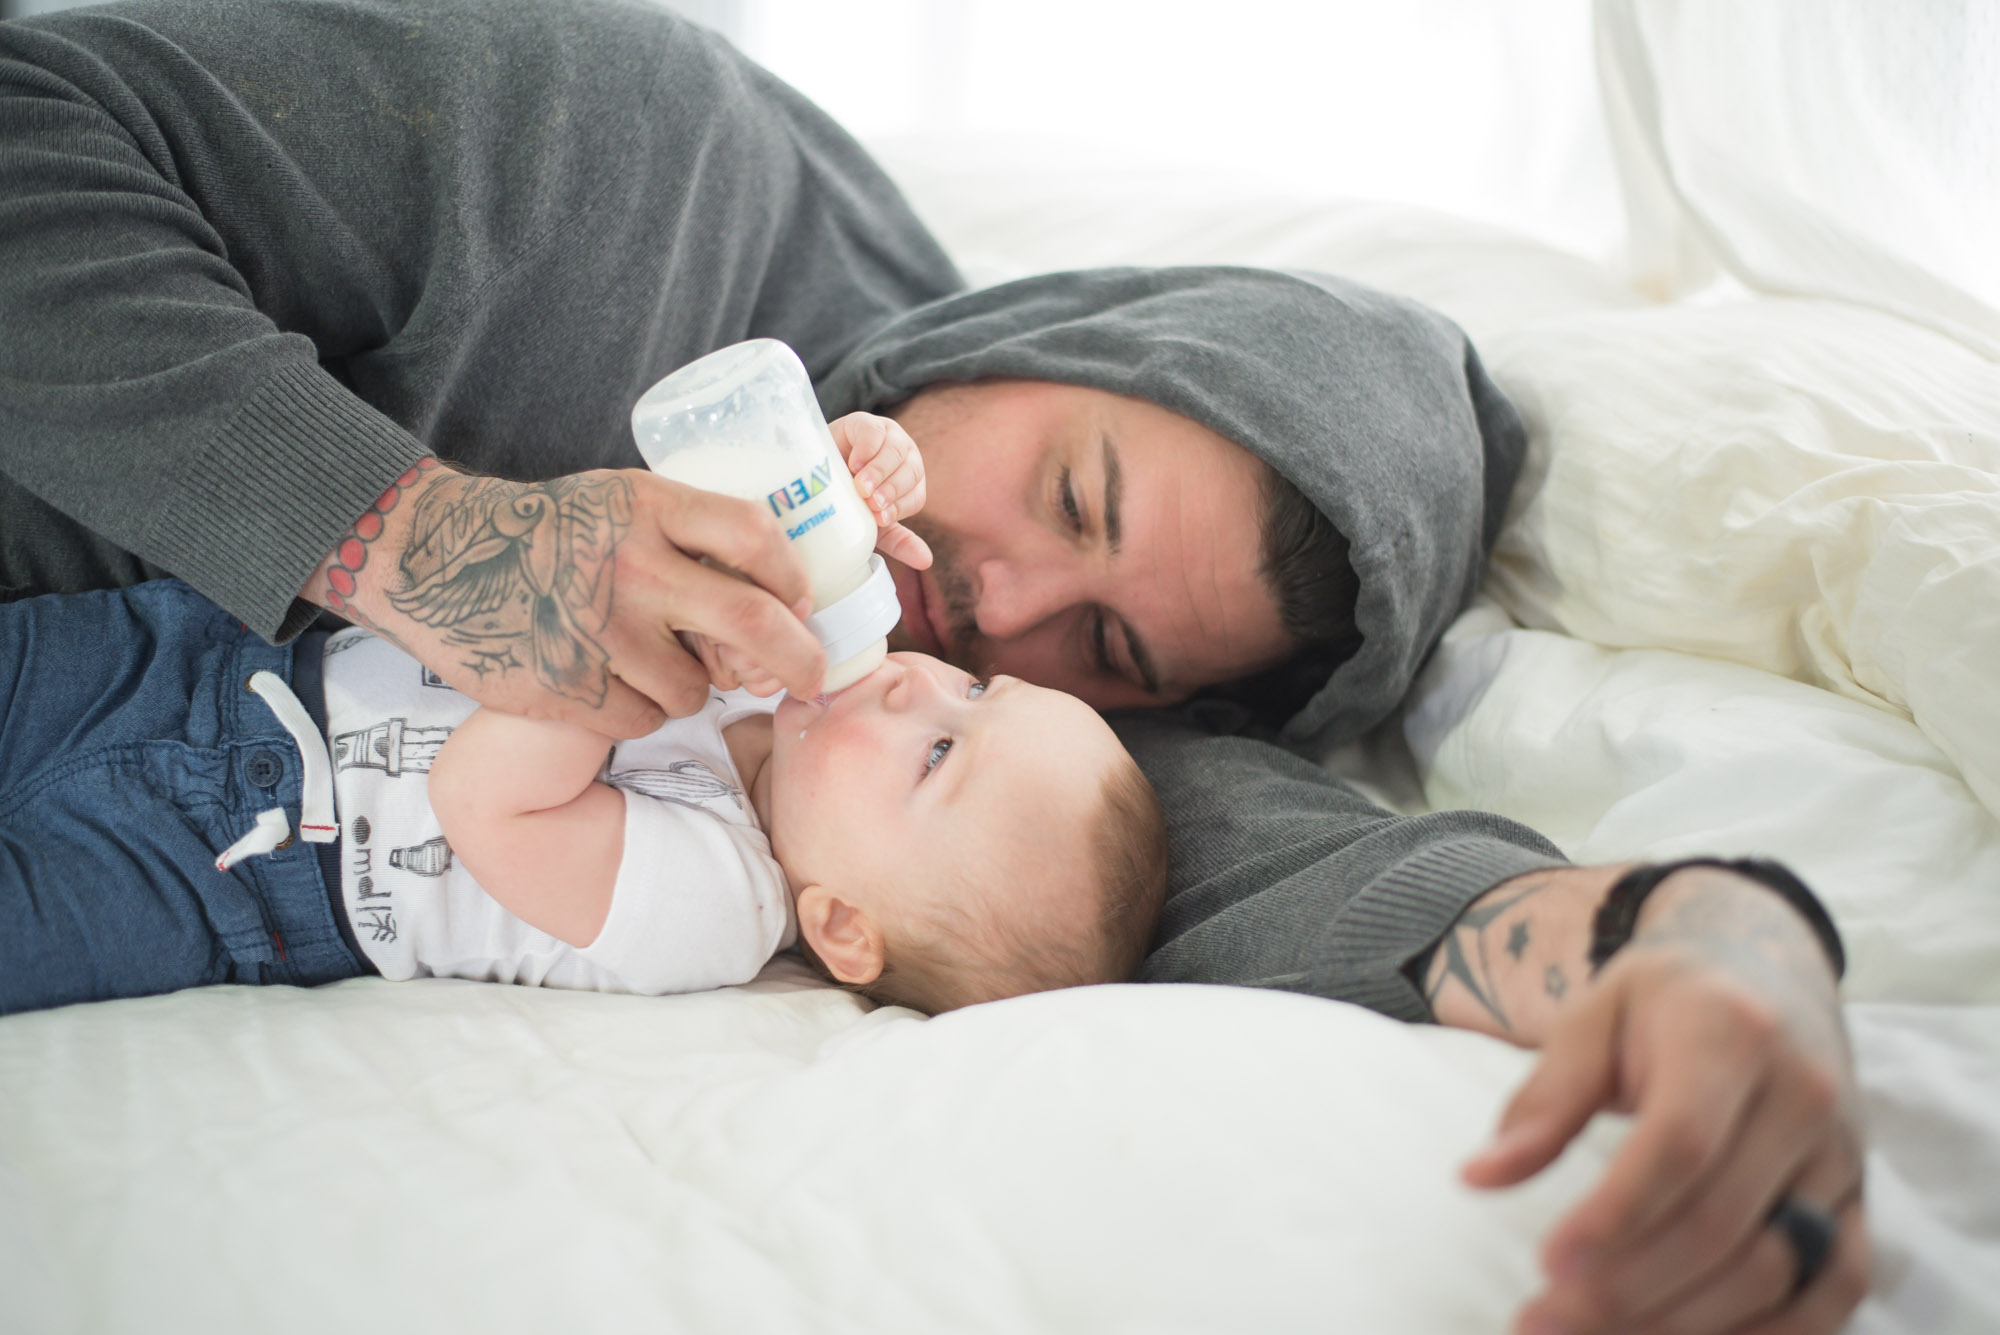 Wild Rosebuds: Weening Poppy with The Help Of Philips Avent Anti-Colic Bottles